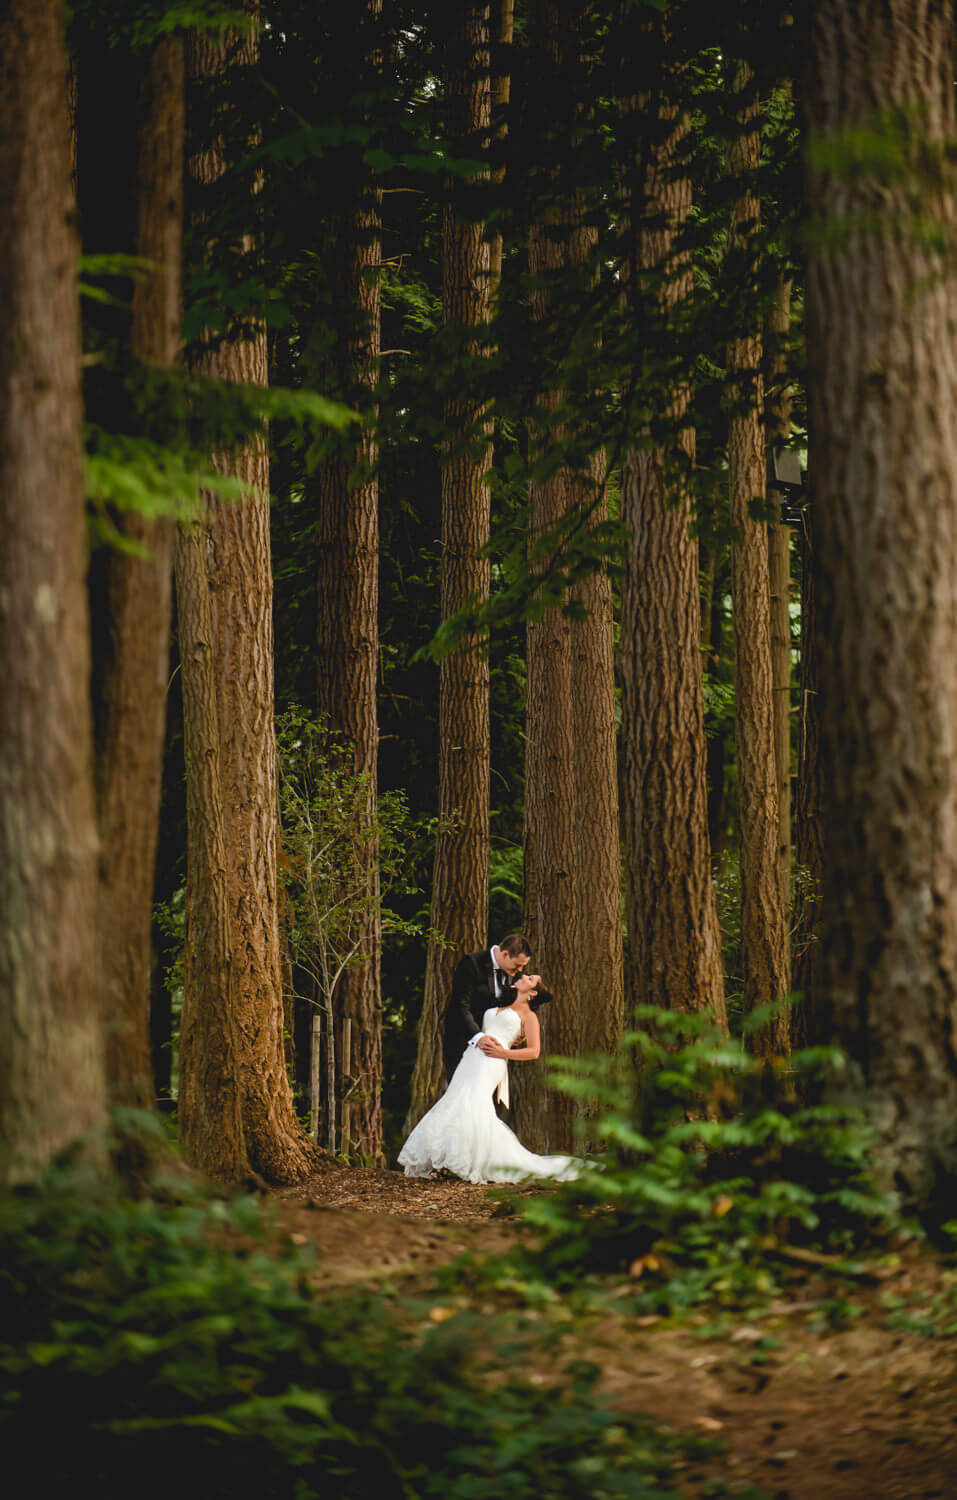 kissing-bride-groom-forest.jpg